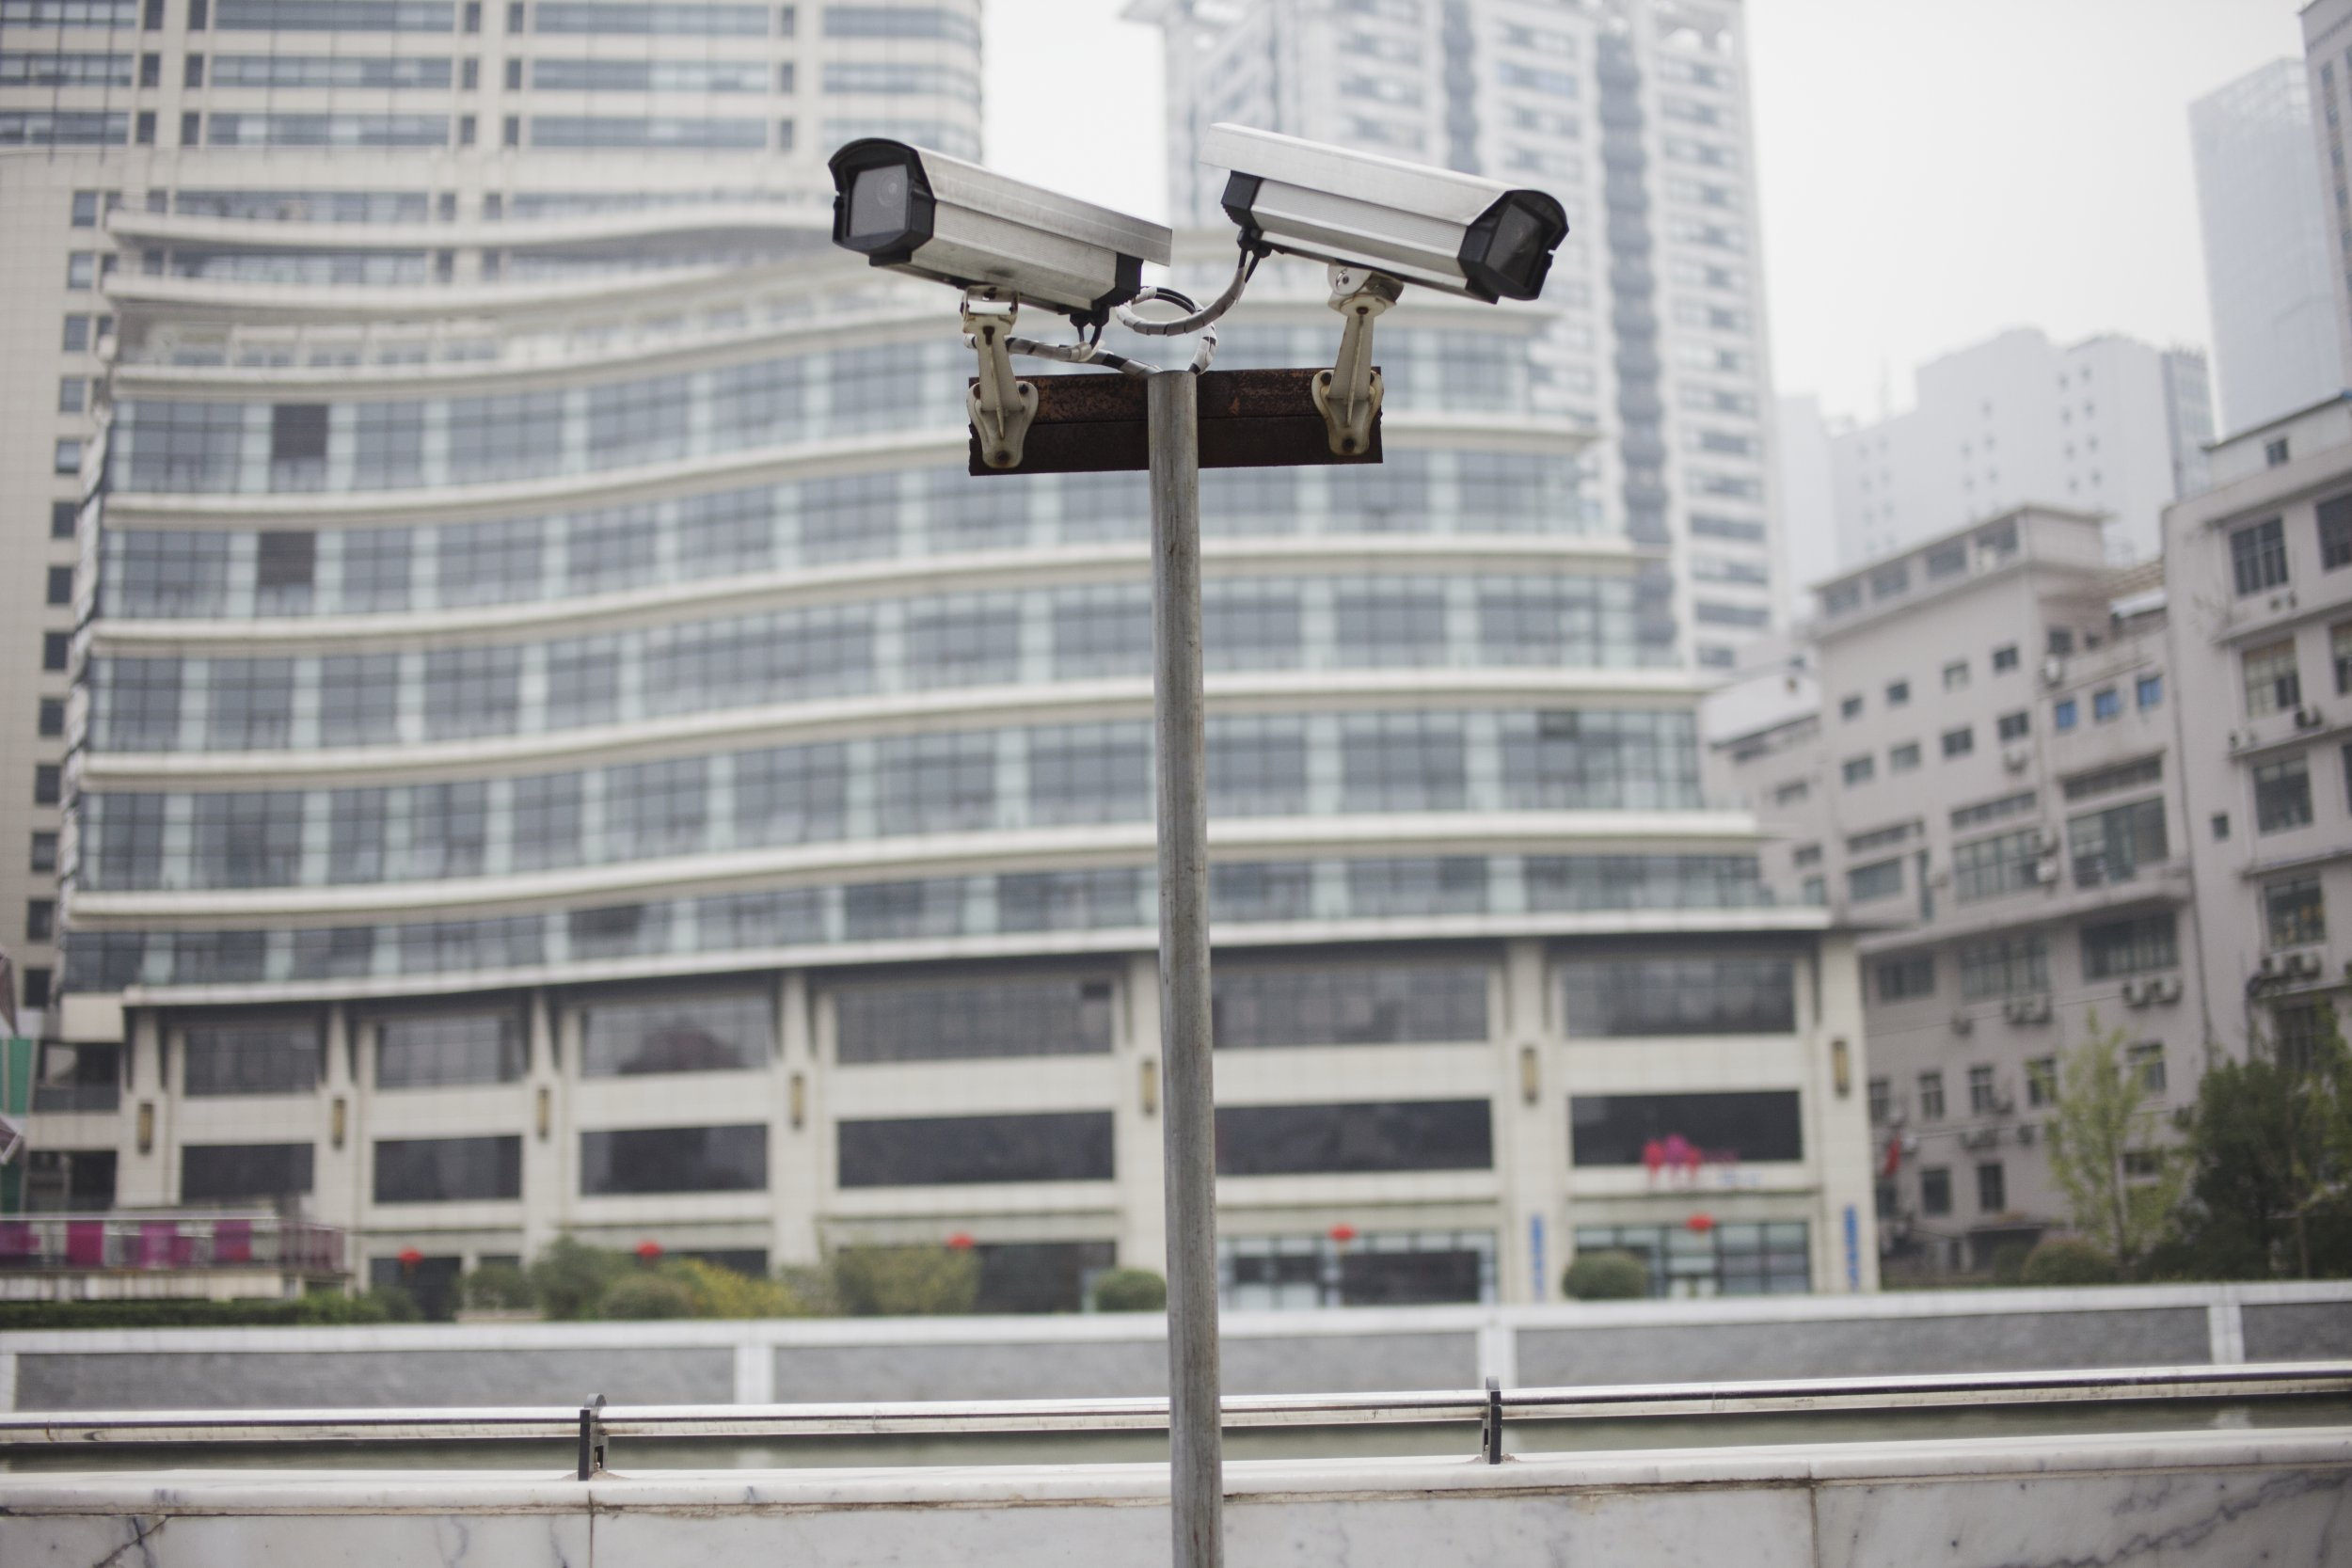 Security cameras in China